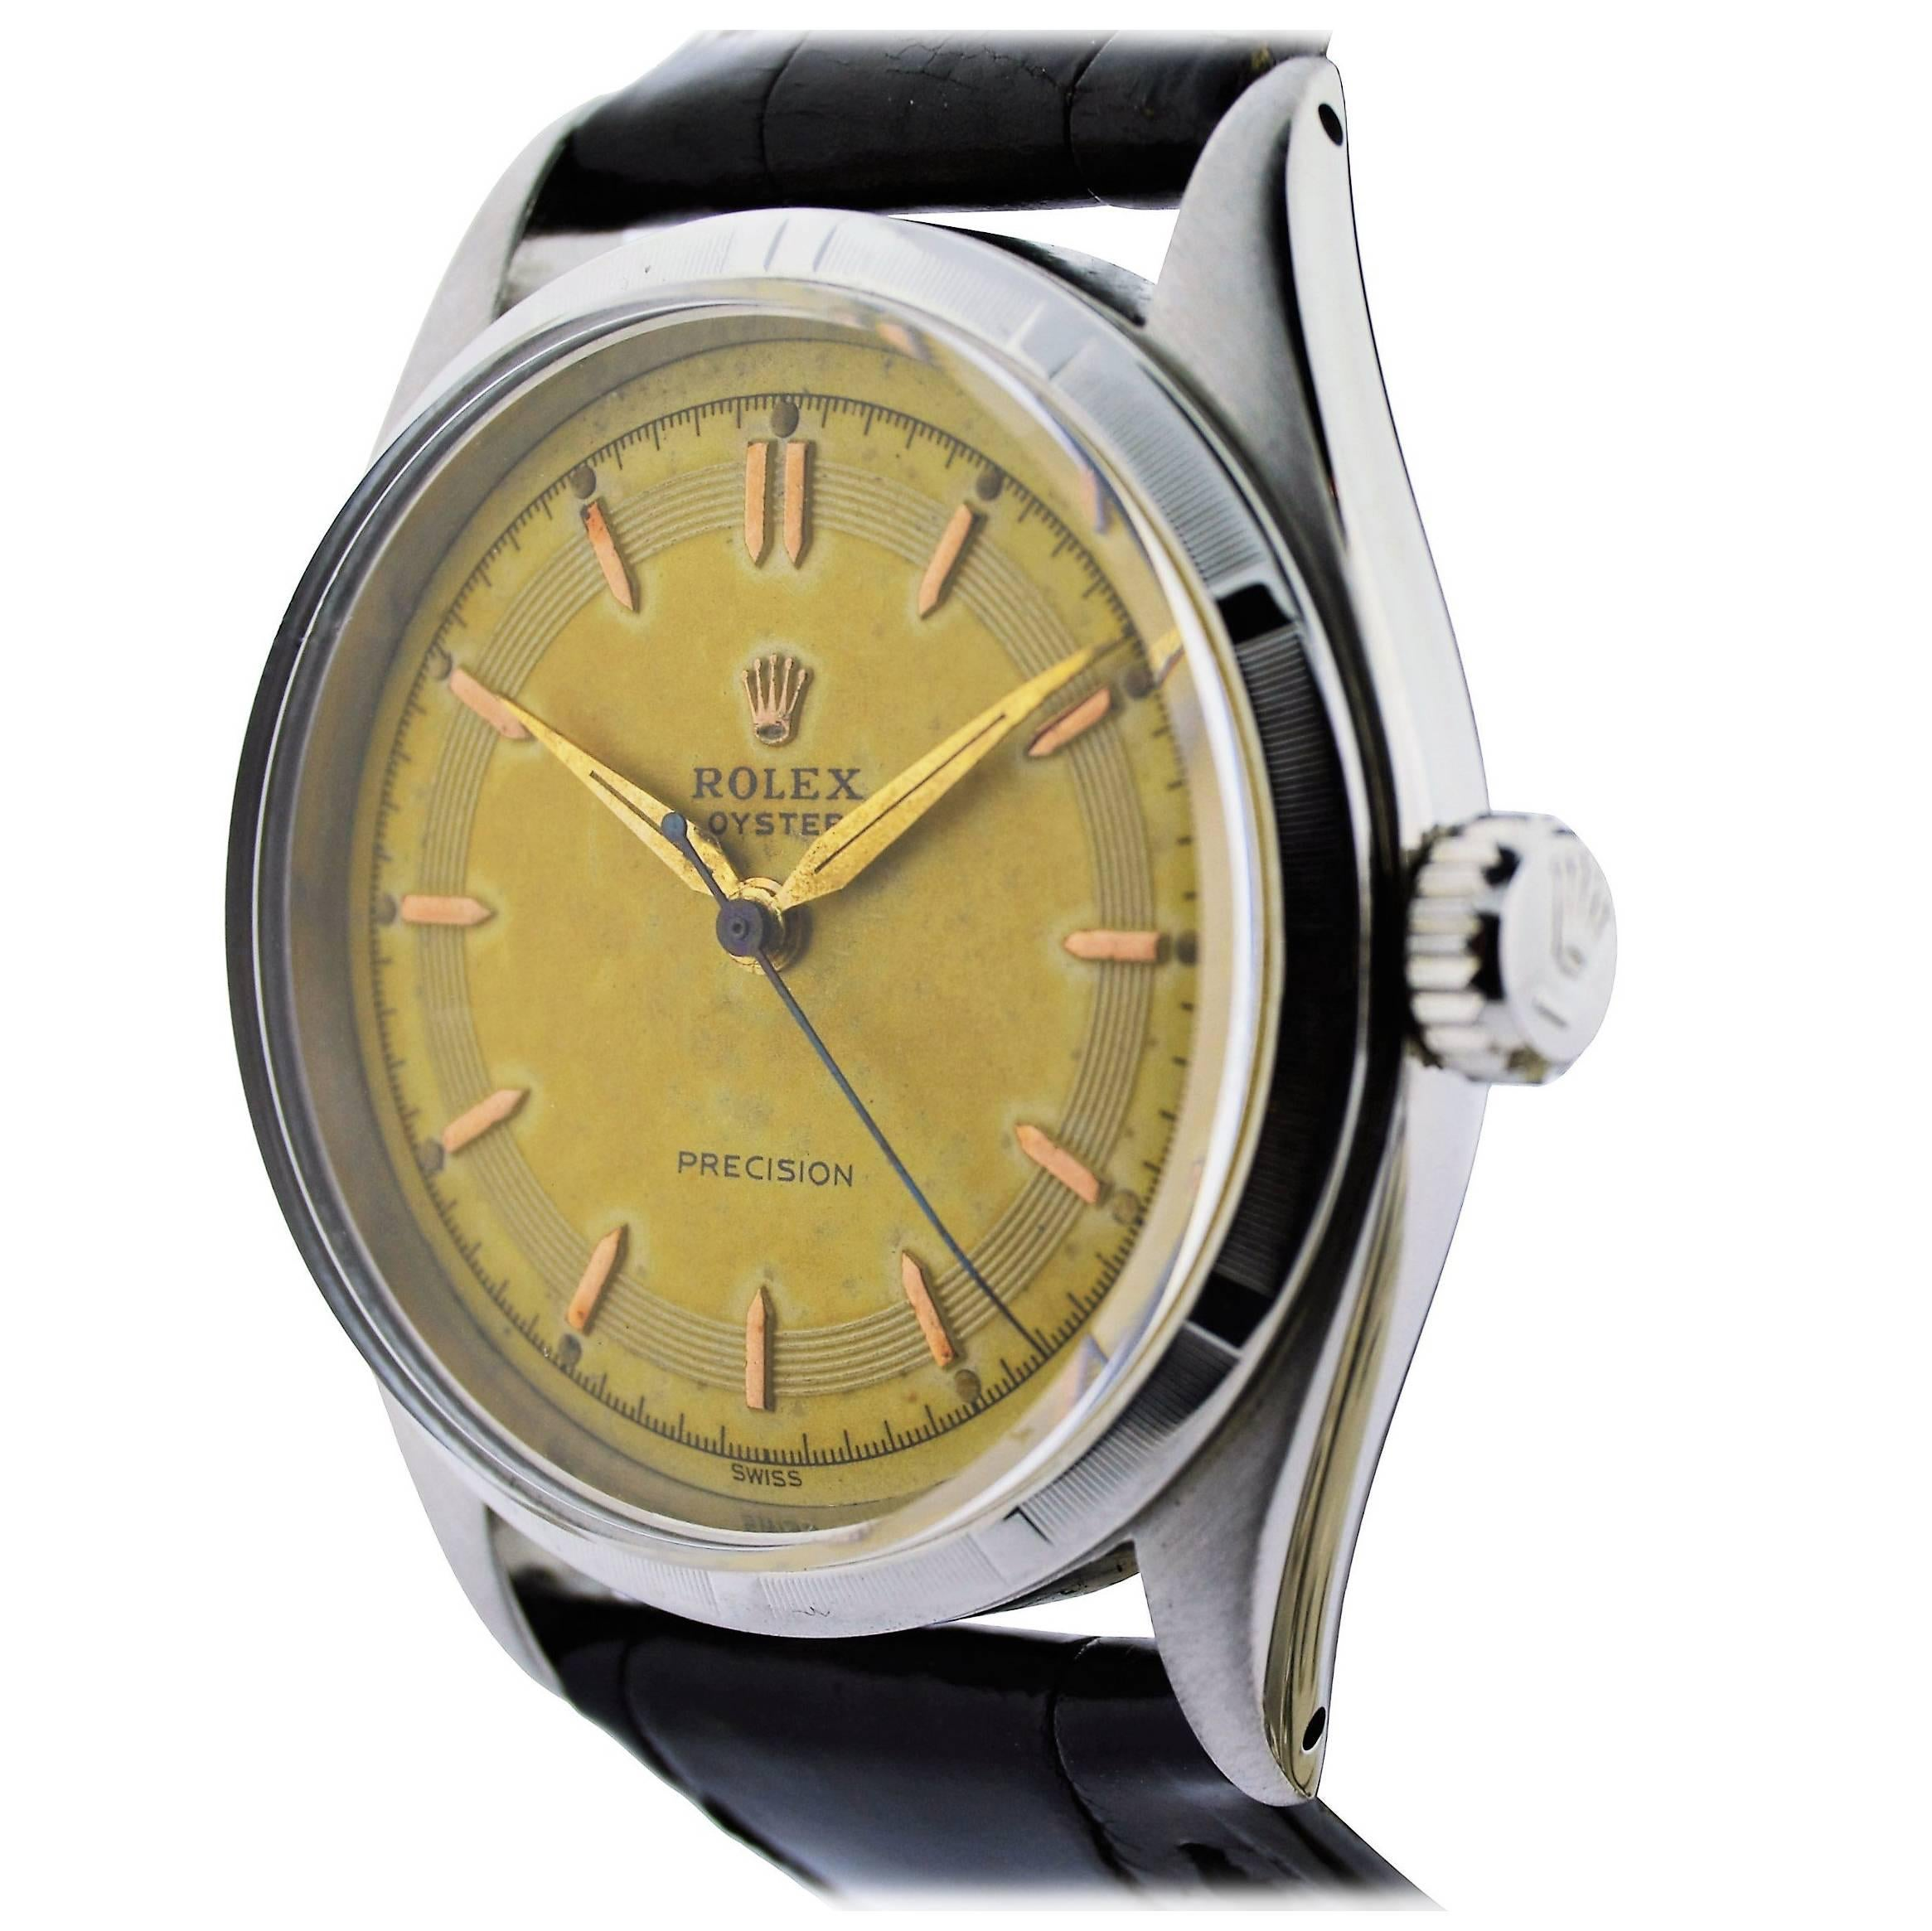 Rolex Stainless Steel Oyster Precision Index Bezel Watch From 1952